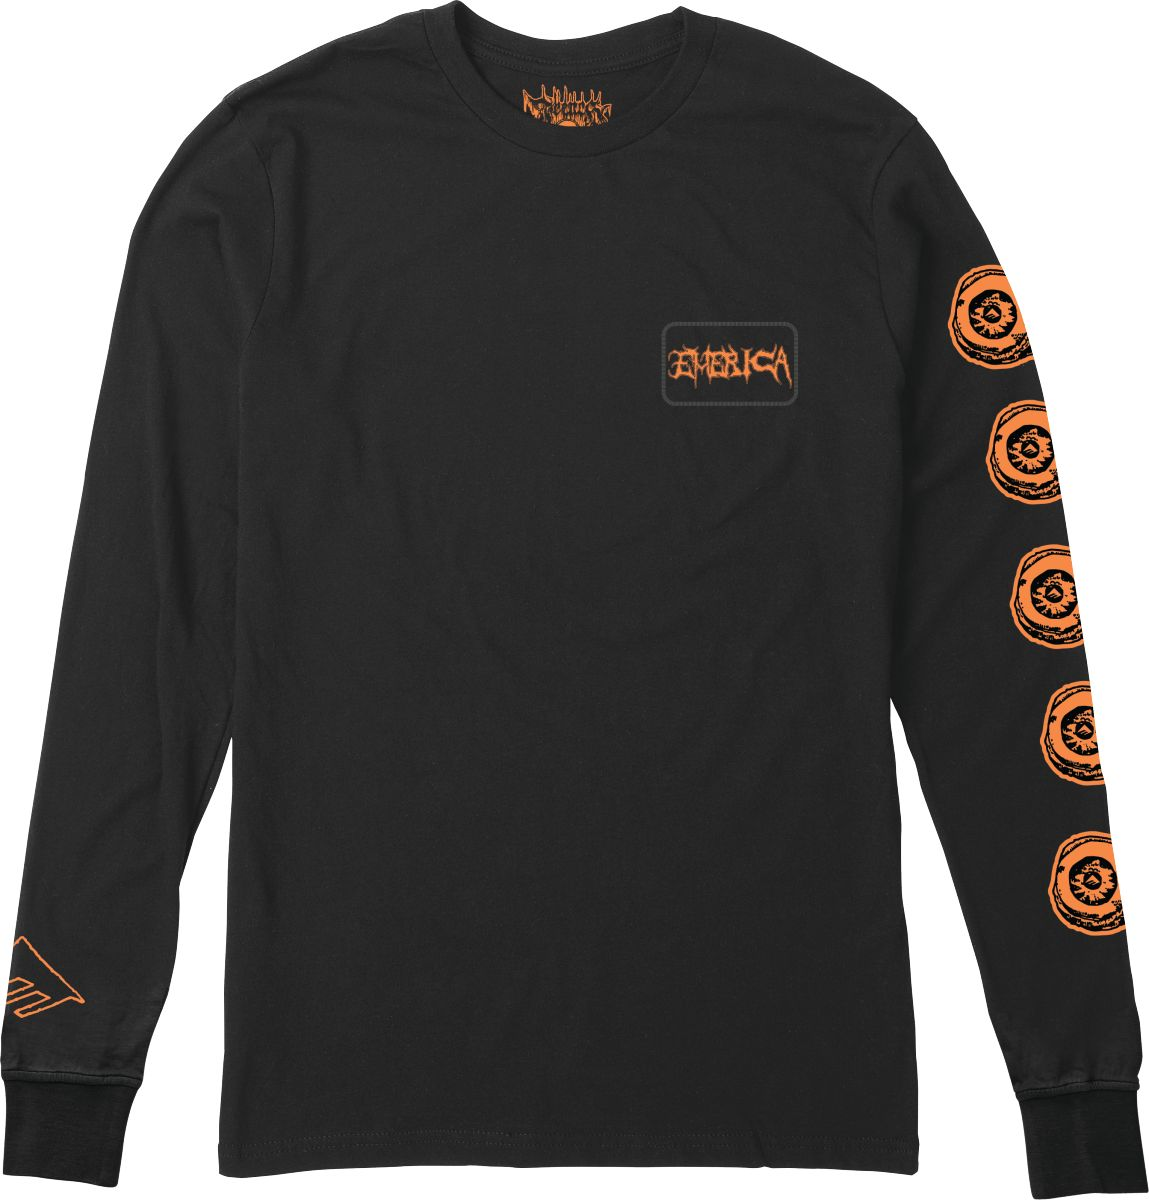 Emerica French Skulleyes L/S T-Shirt